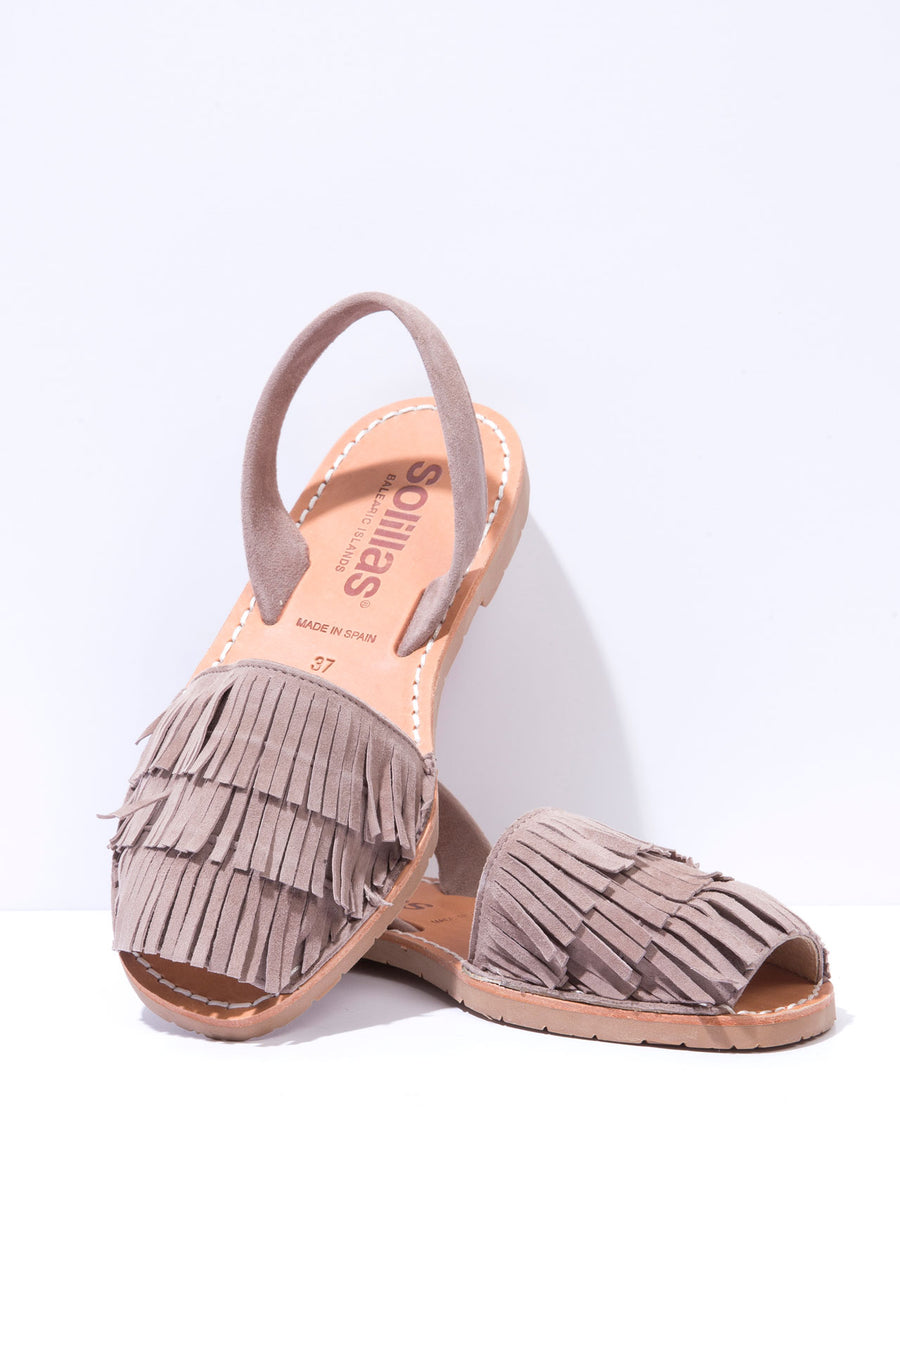 Franja - Fringe Detail Leather Menorcan sandals